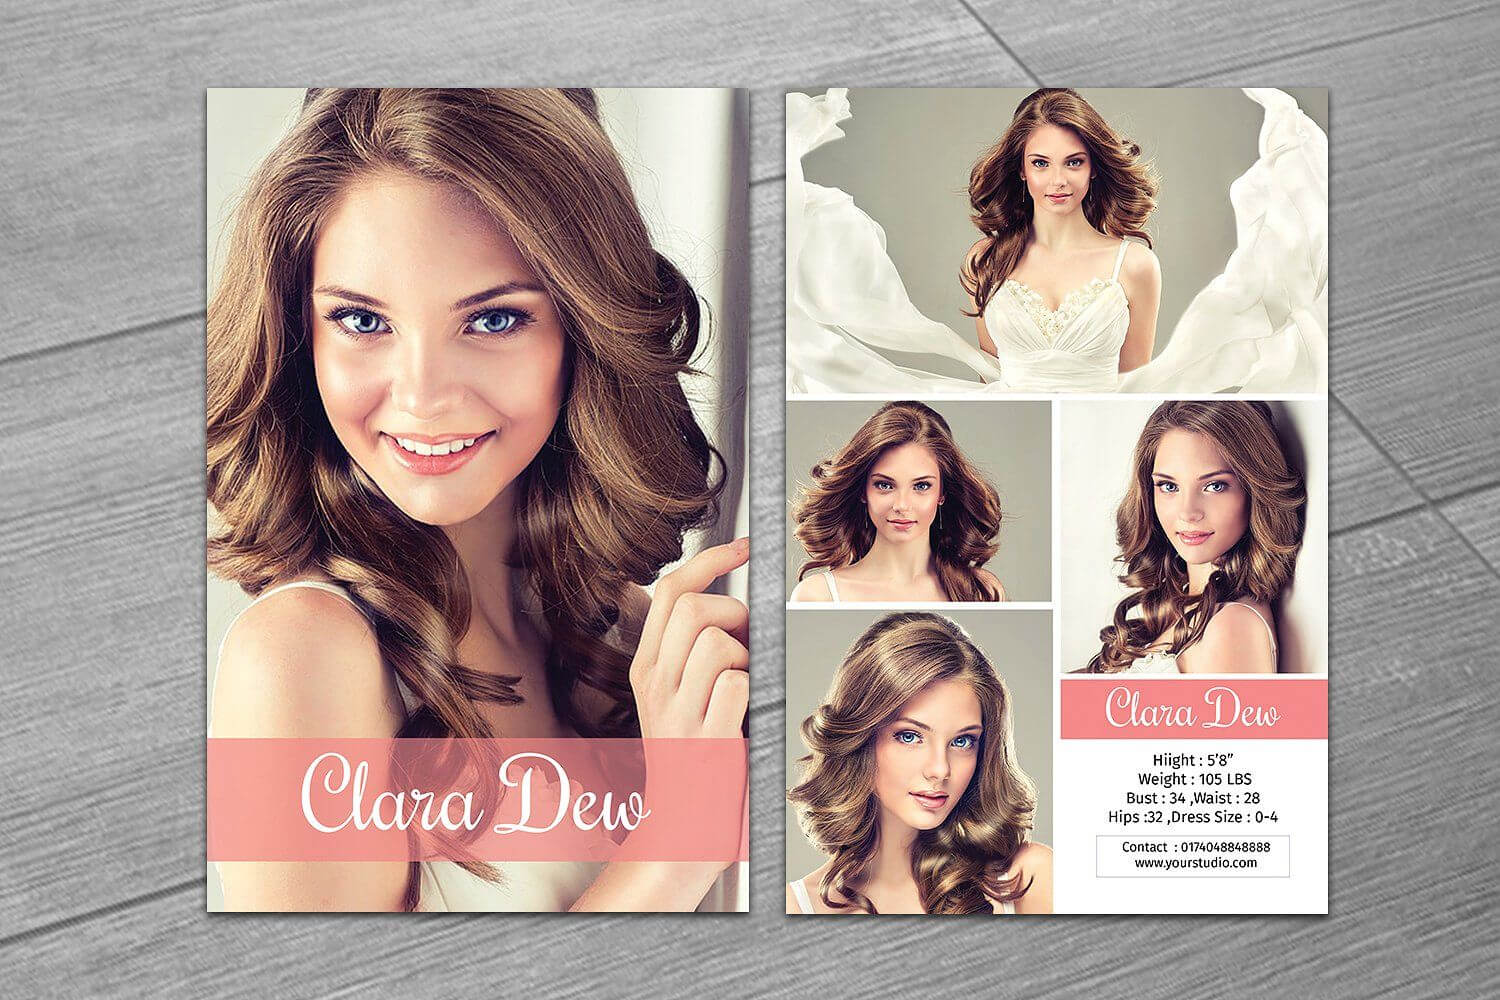 005 Model Comp Card Template Ideas Outstanding Photoshop With Regard To Zed Card Template Free